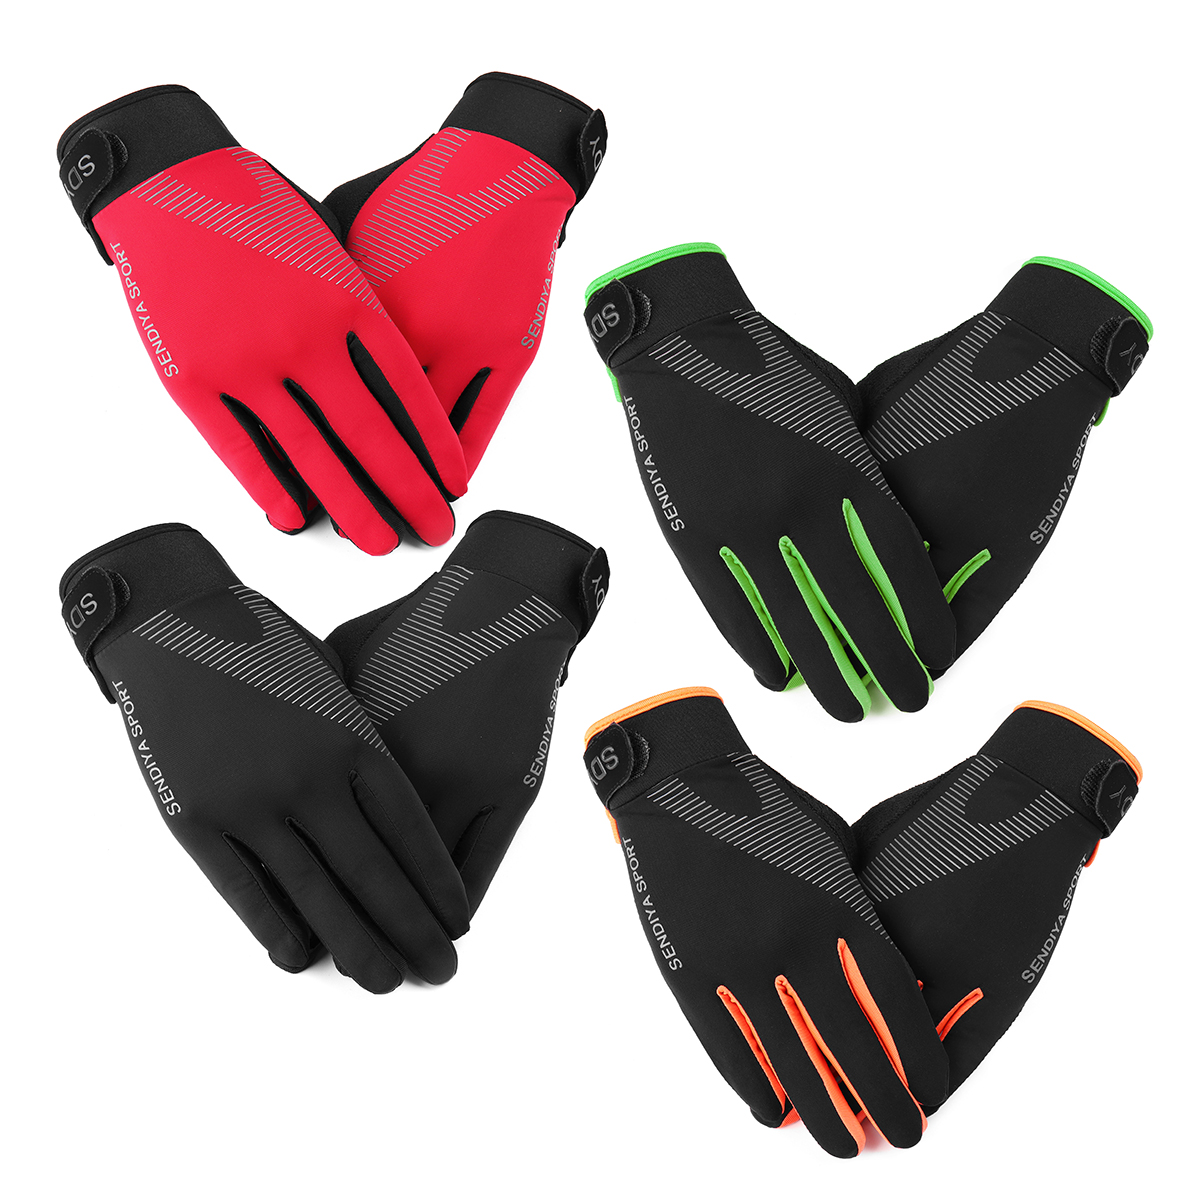 BIKIGHT Bike Bicycle Gloves Full Finger Touch Screen Cycling Outdoor Sports Long Gloves For Men Women